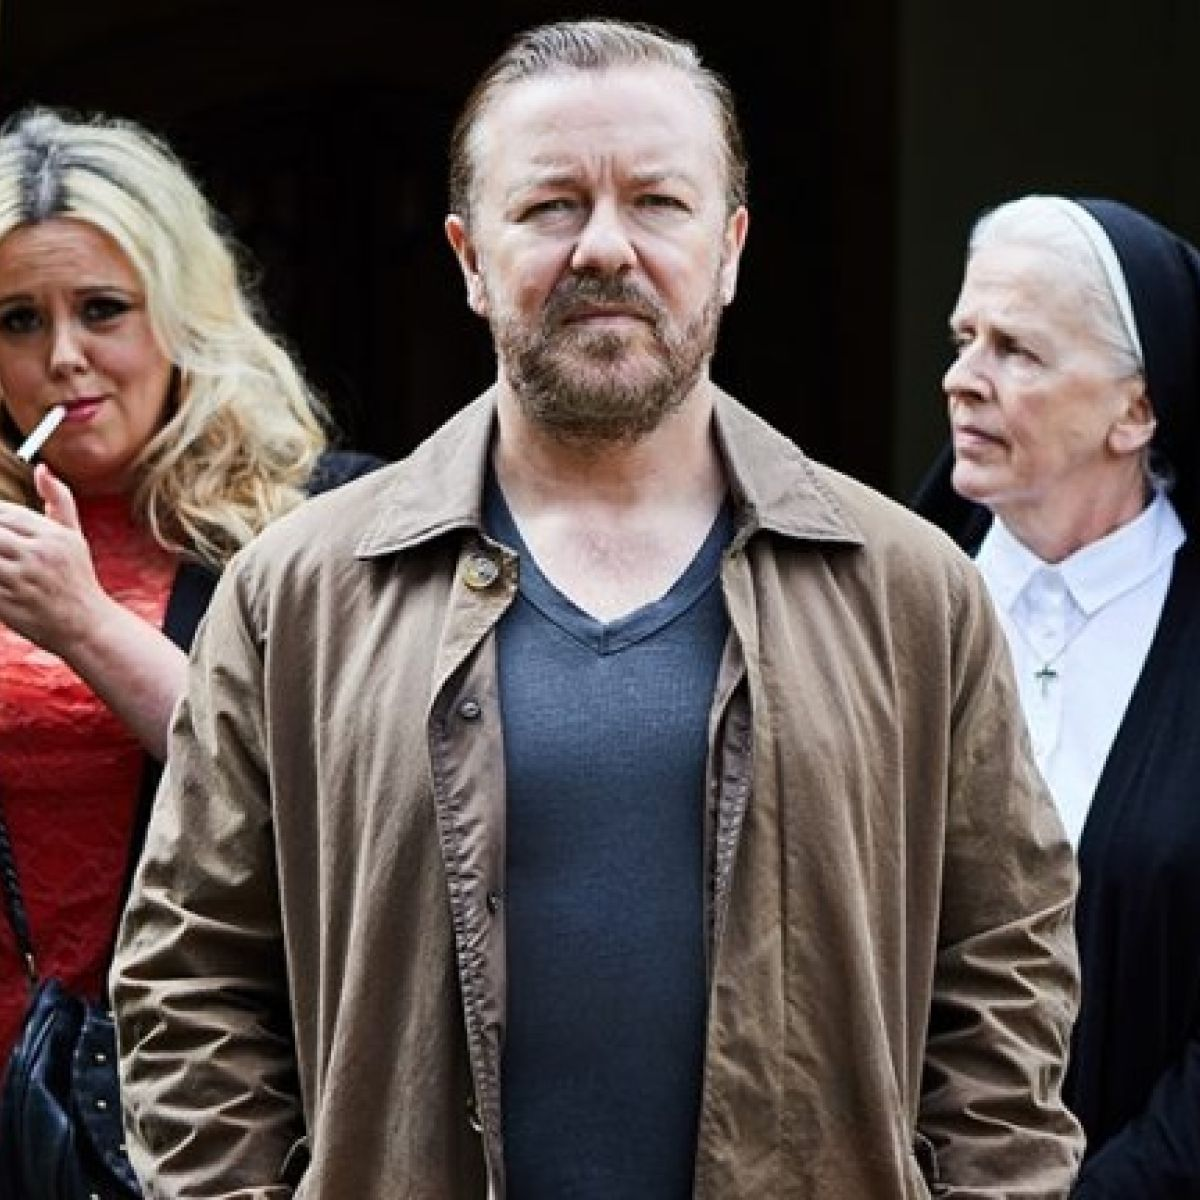 After Life: Ricky Gervais's obnoxious new comedy isn't funny